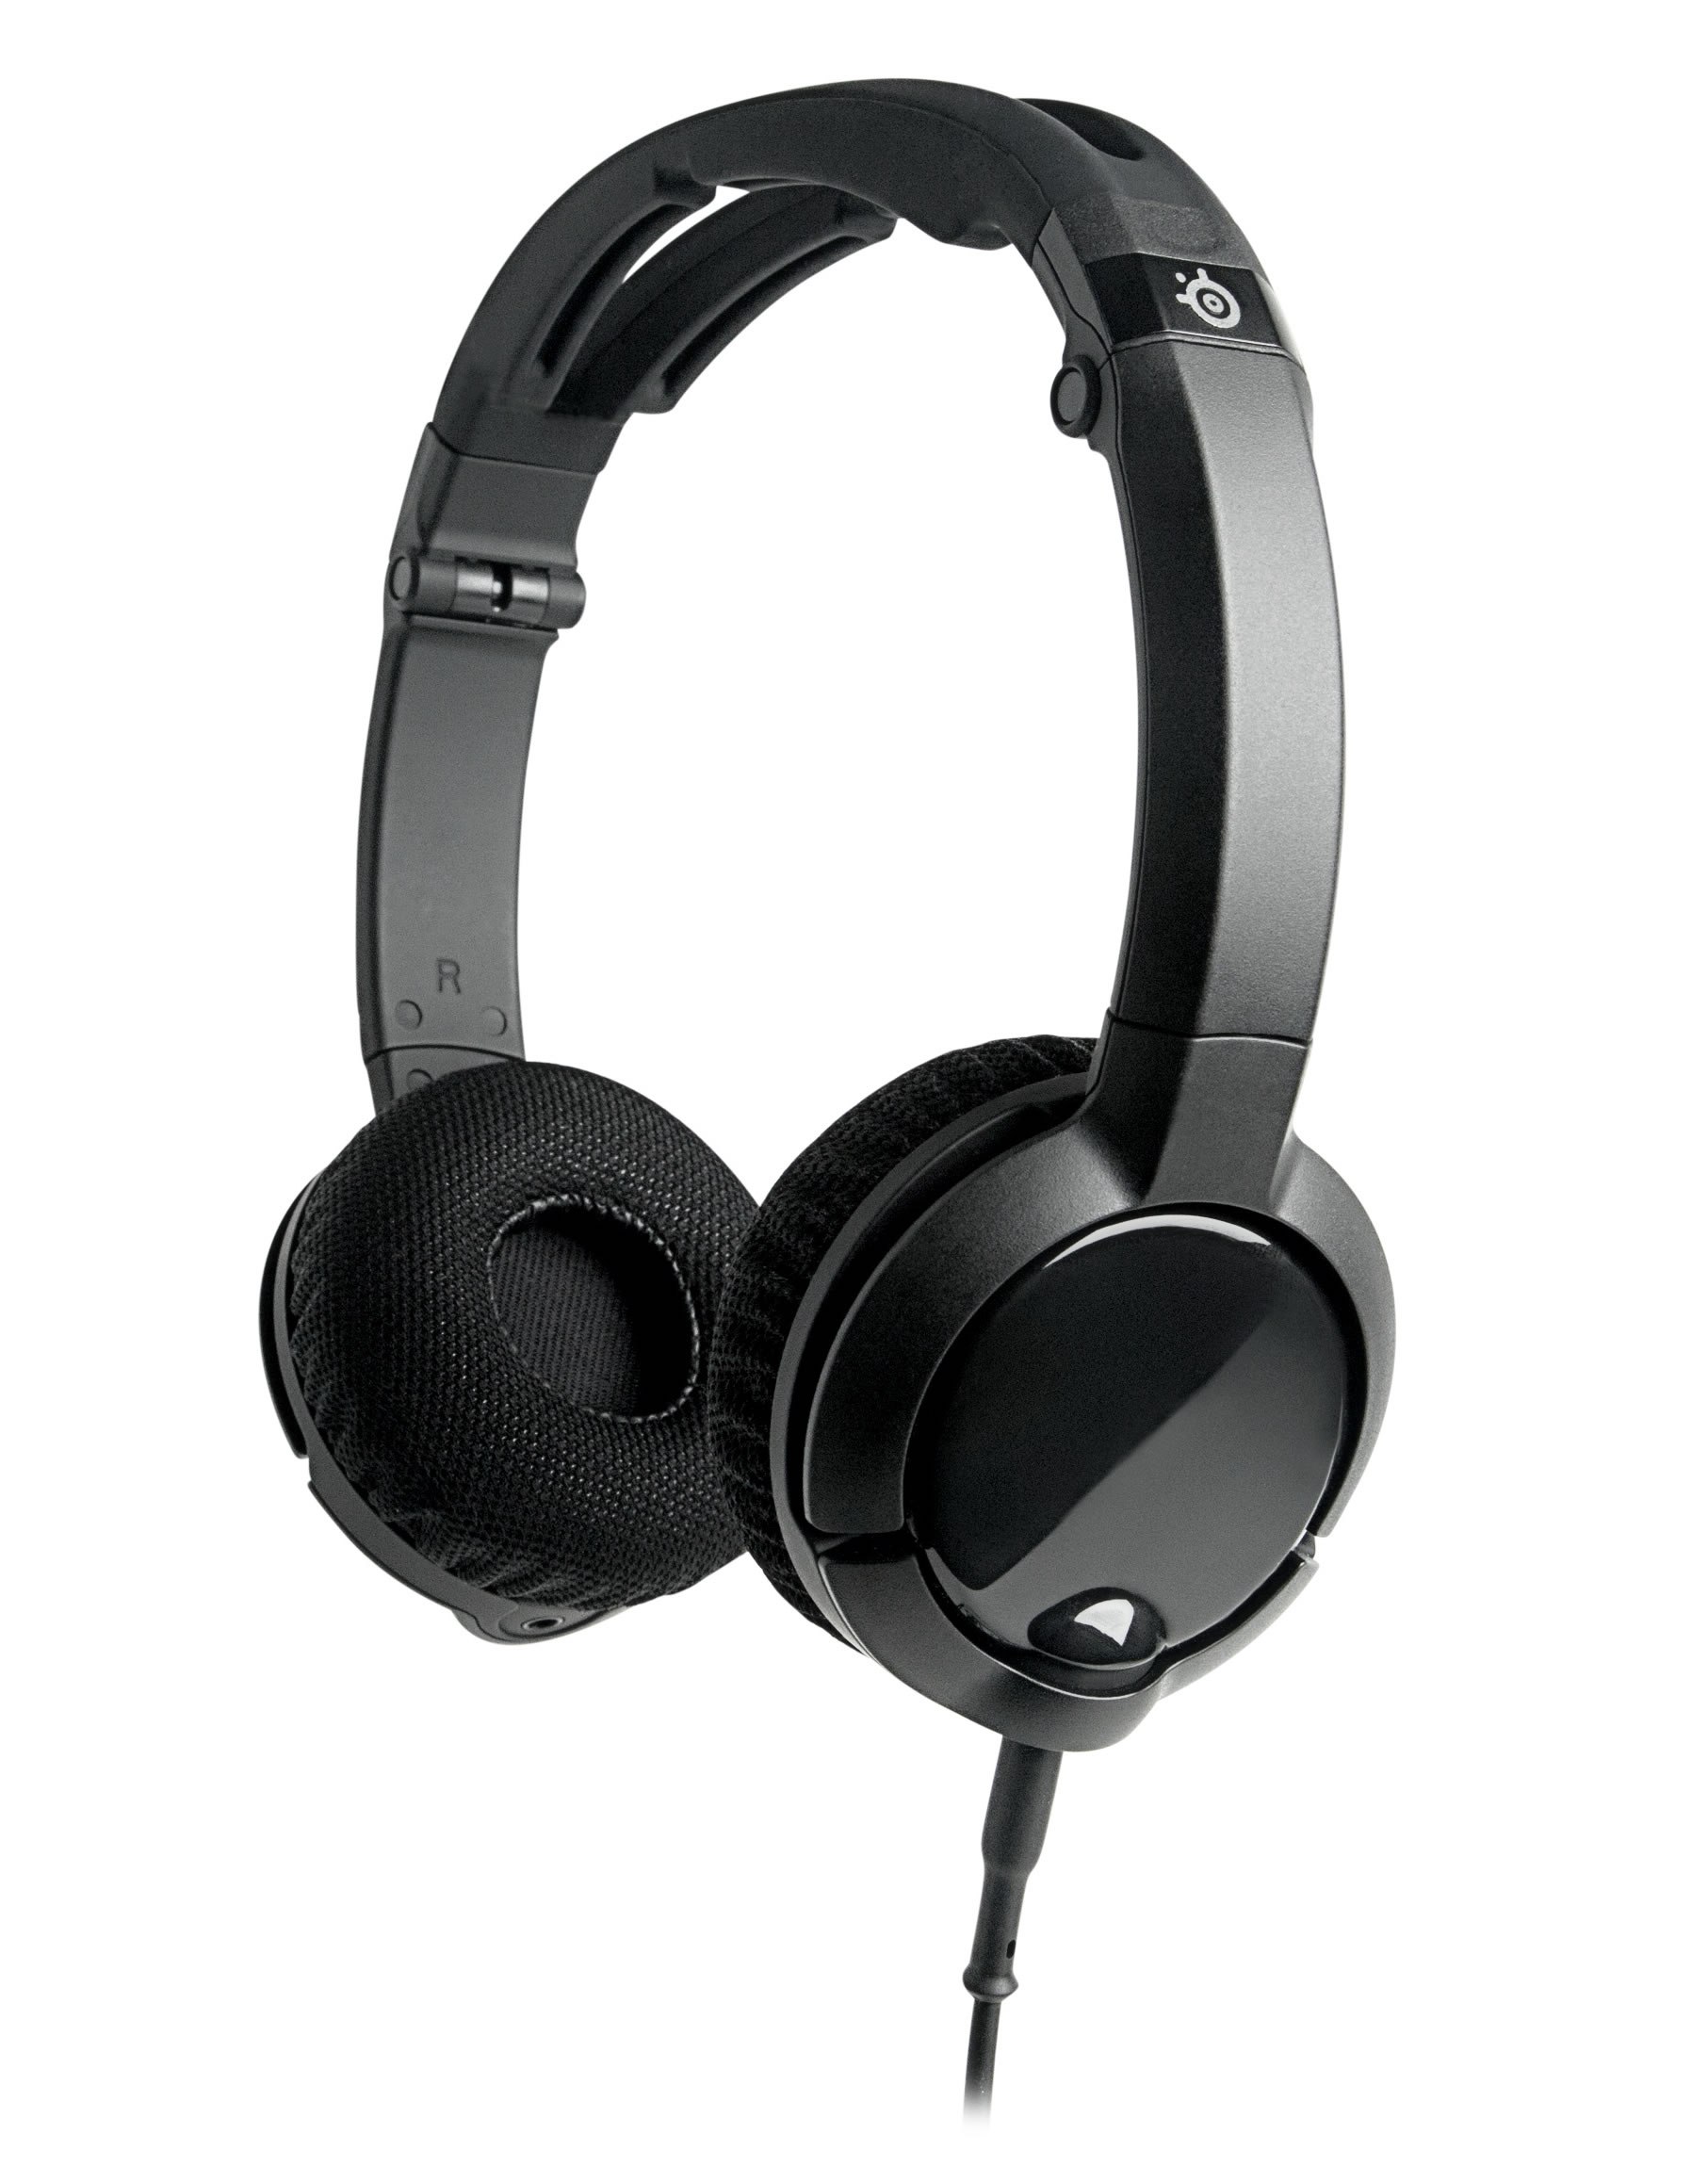 SteelSeries Flux Black headset